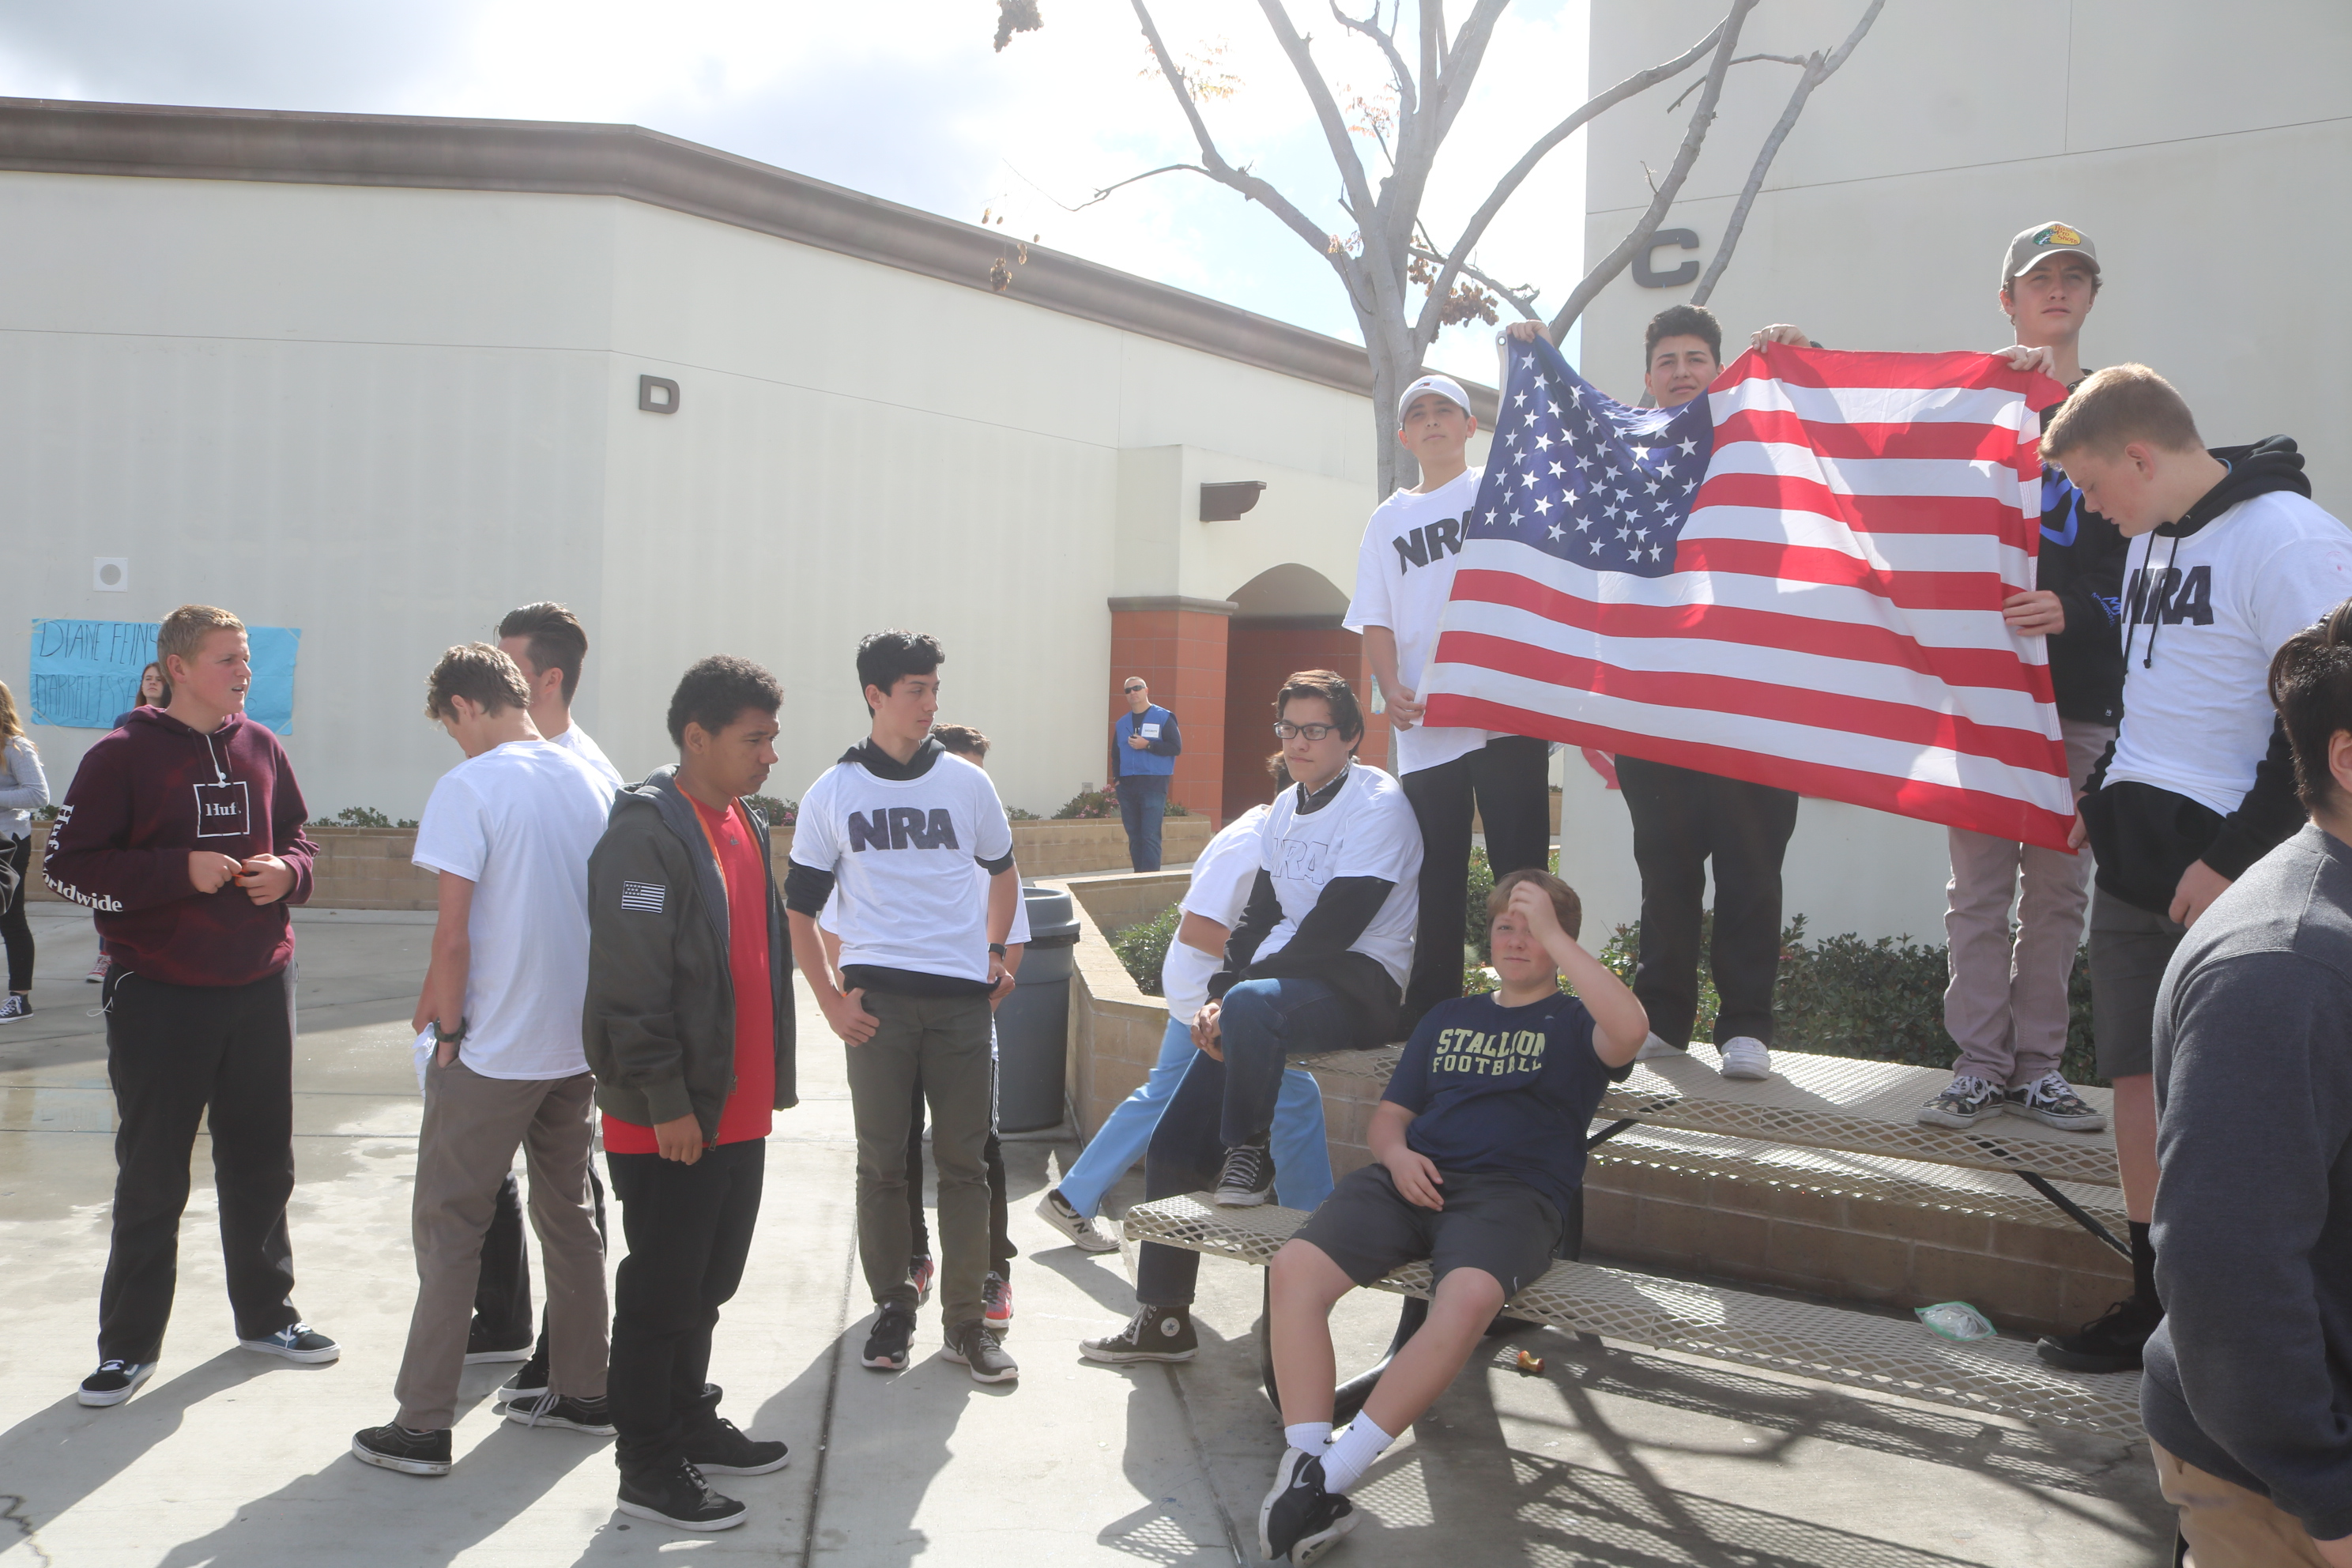 Students express support to the NRA and the 2nd Amendment during the demonstration.